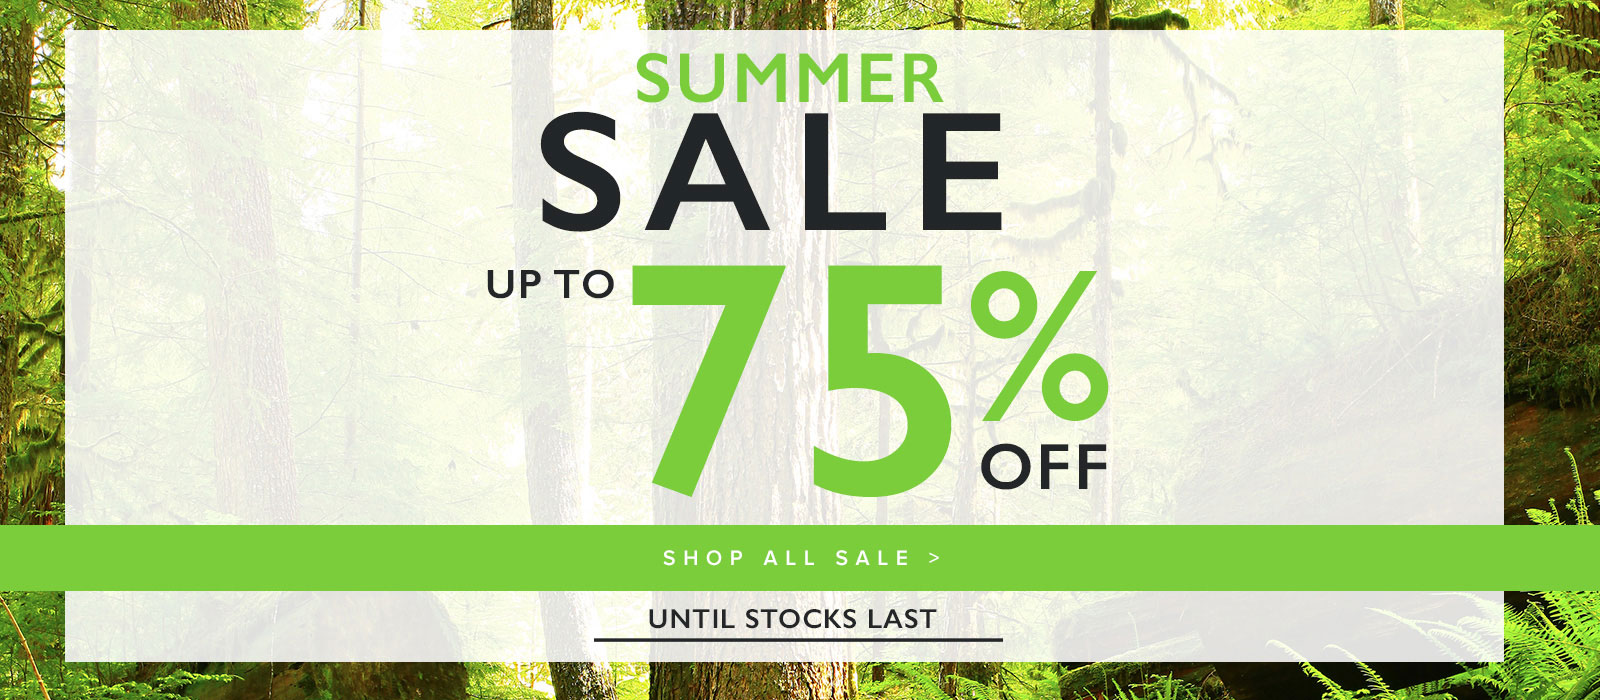 Simply Hike: Sale up to 75% off for hiking equipment